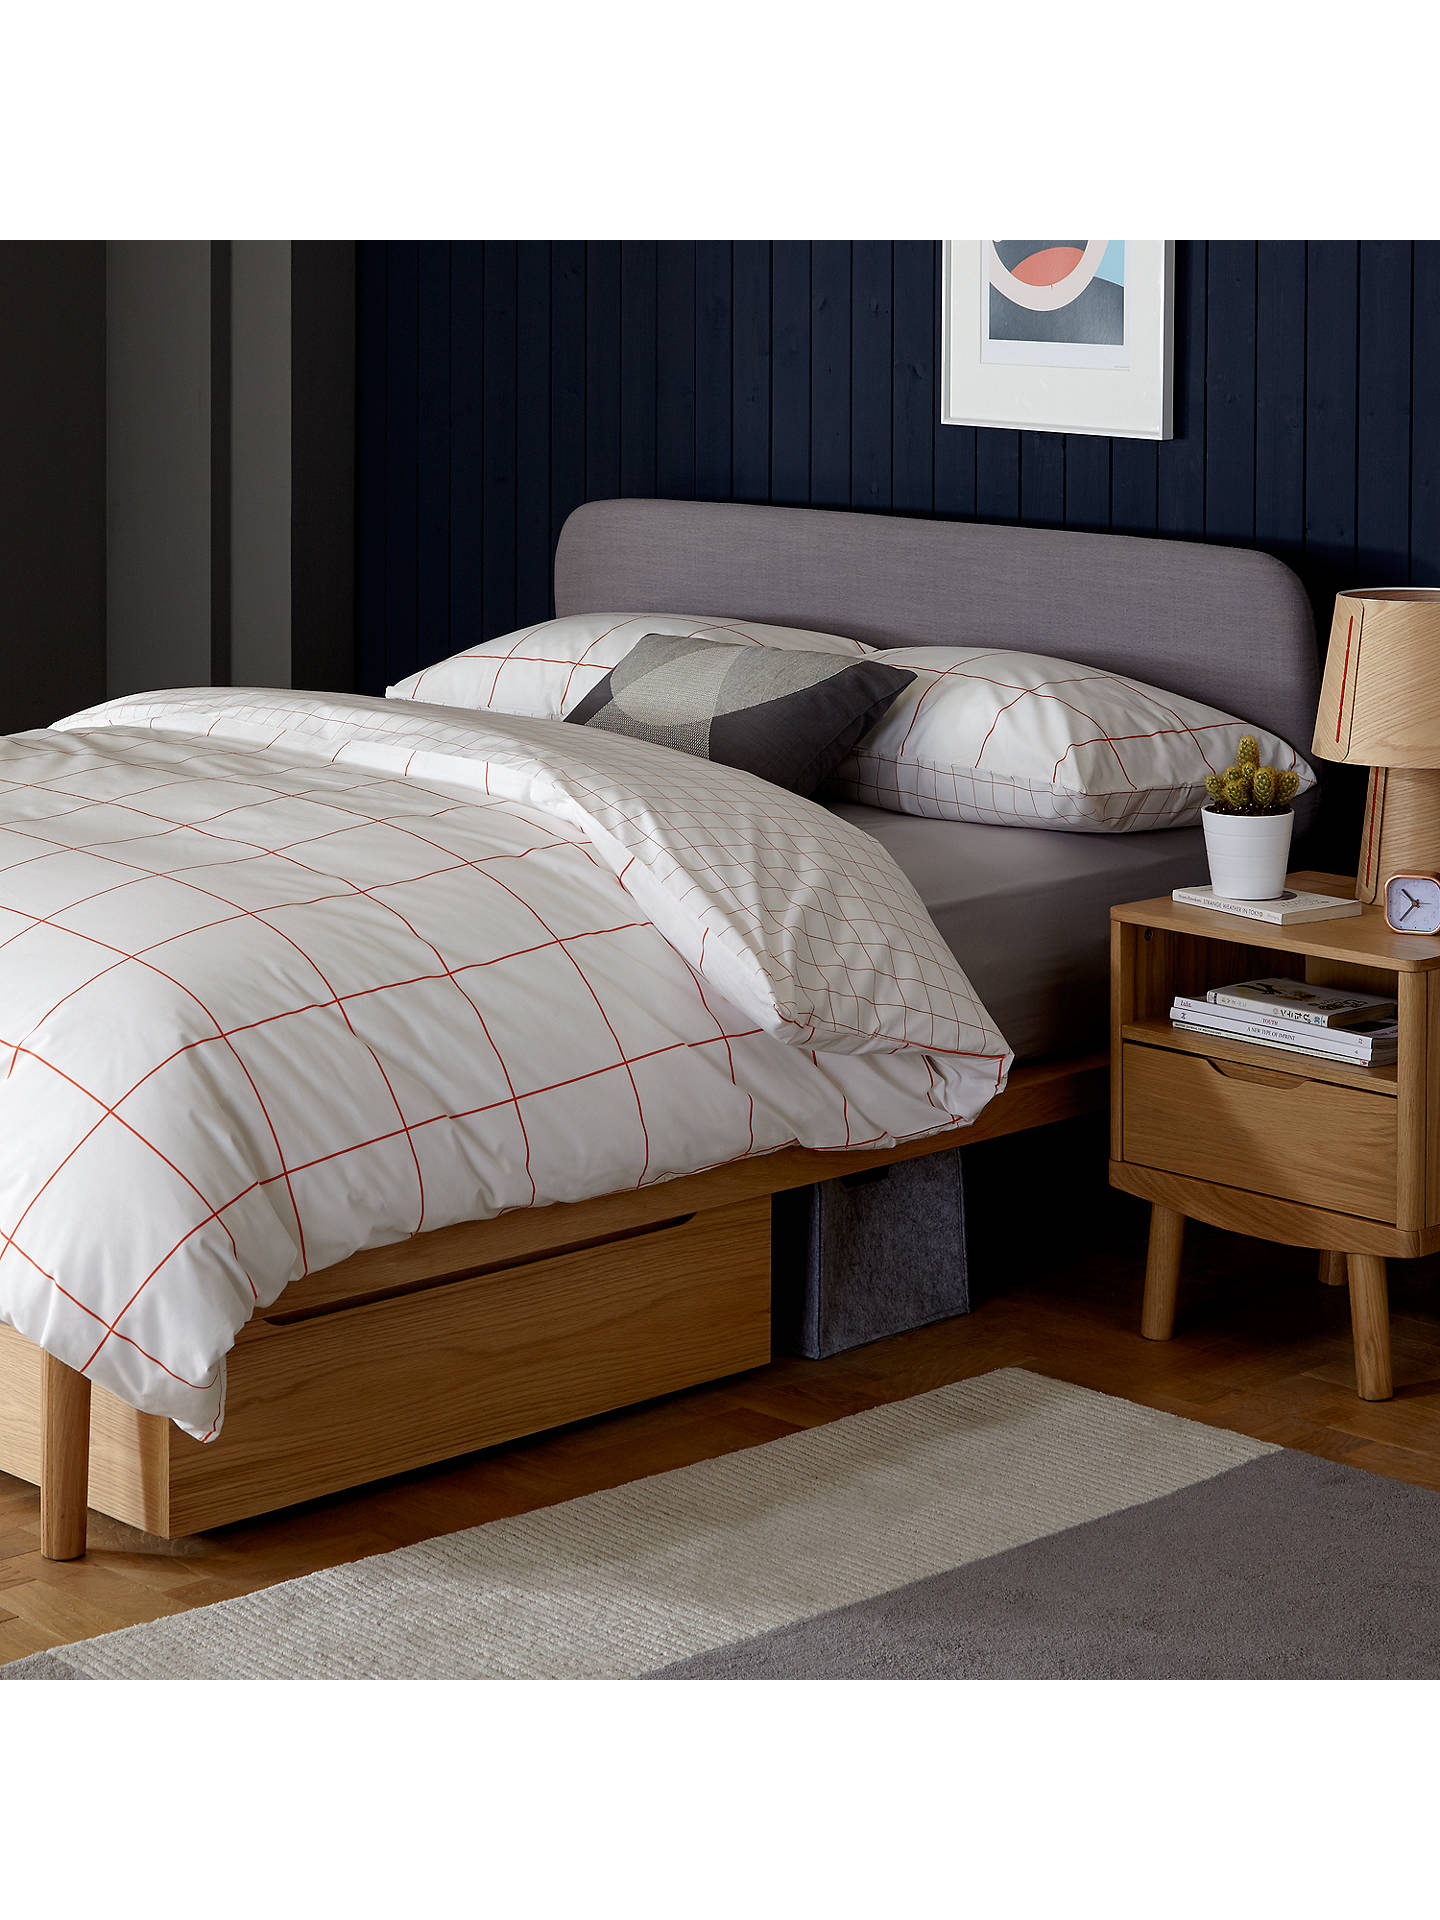 Buyhouse by john lewis bow upholstered headboard bed frame king size oak online at